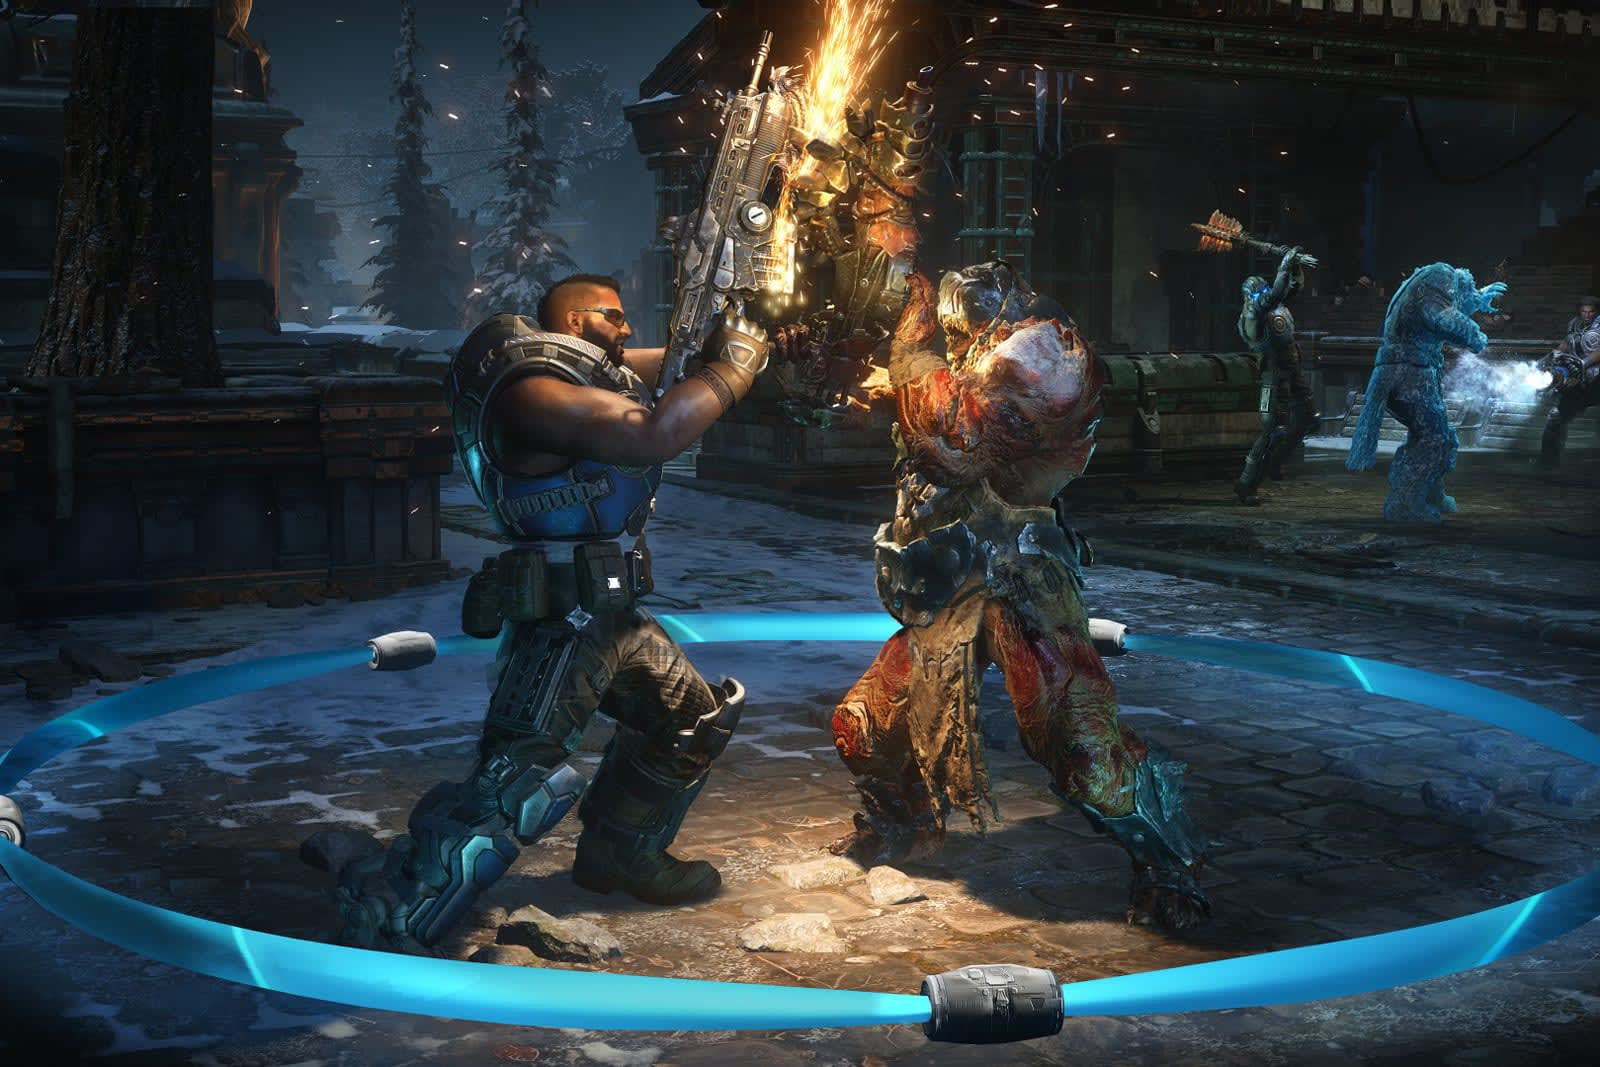 'Gears 5' multiplayer test starts July 19th